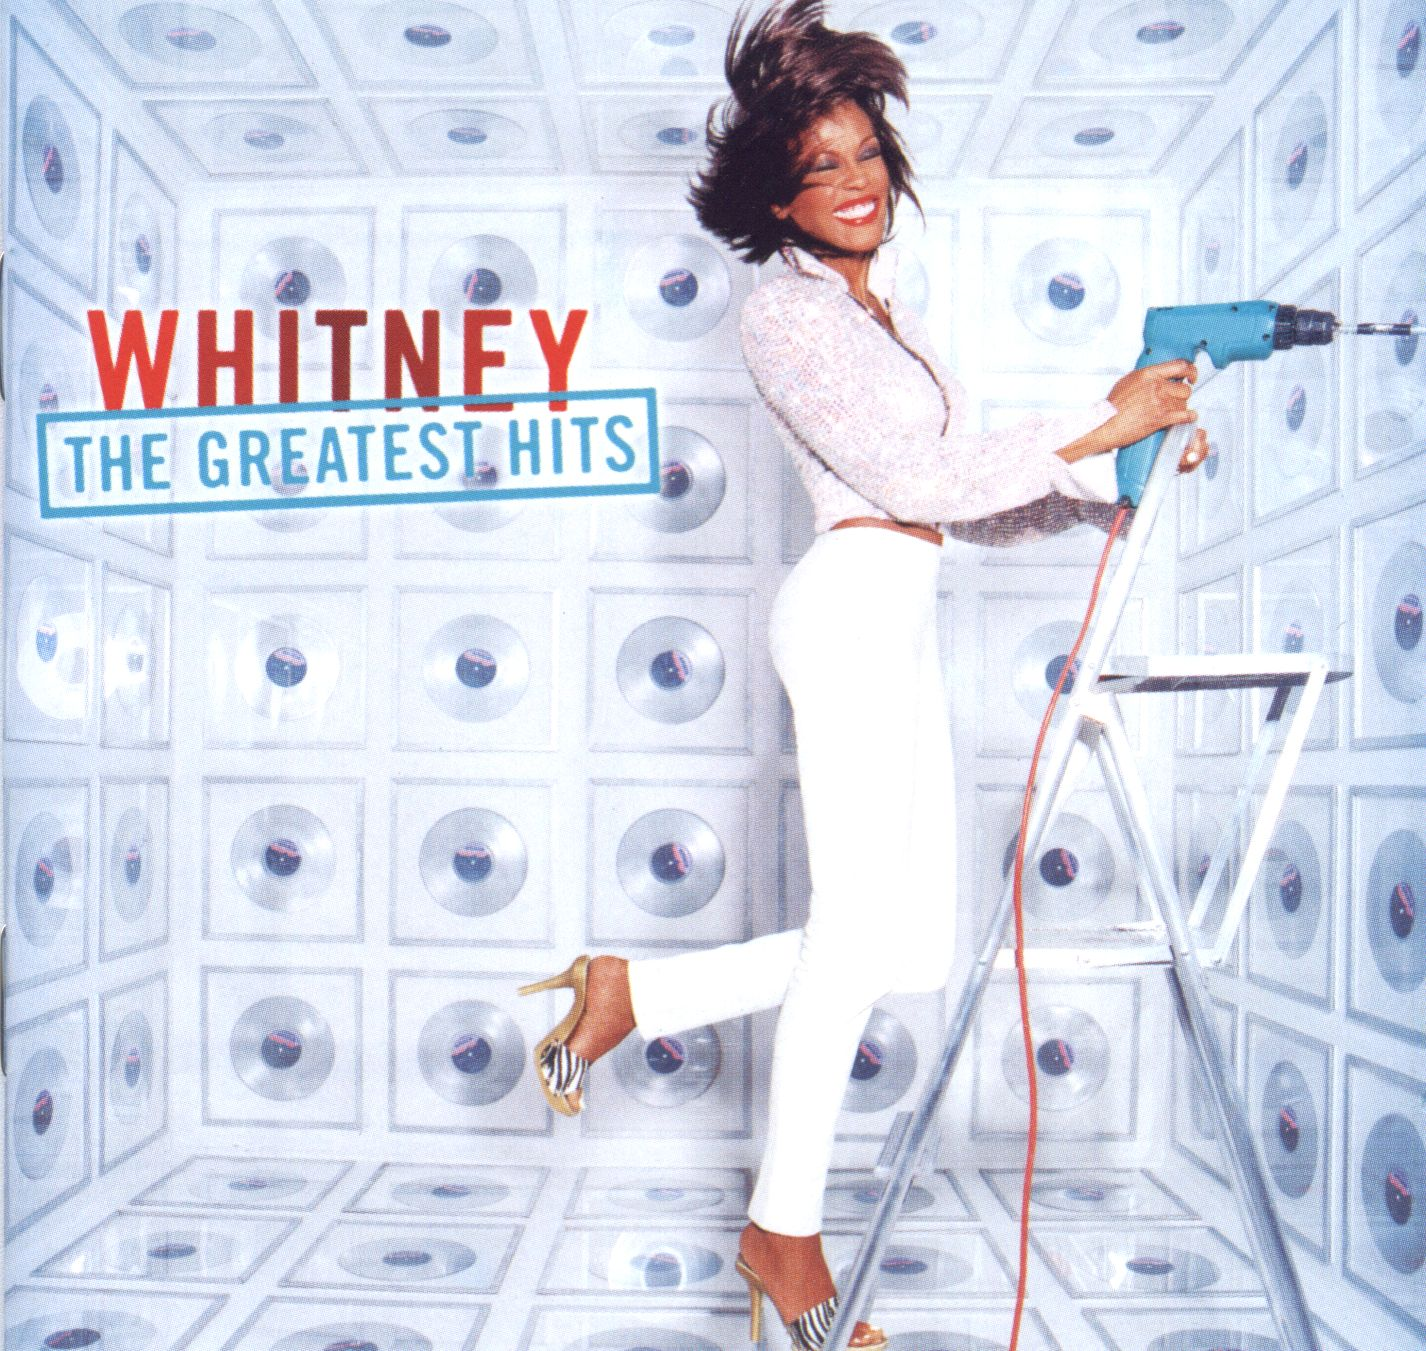 http://4.bp.blogspot.com/-3A1qOxUCQjk/TzqBRw-d8eI/AAAAAAAAdwo/vm-m_TqHS3w/s1600/whitney-houston-2000-greatest-hits-album-cover.jpg